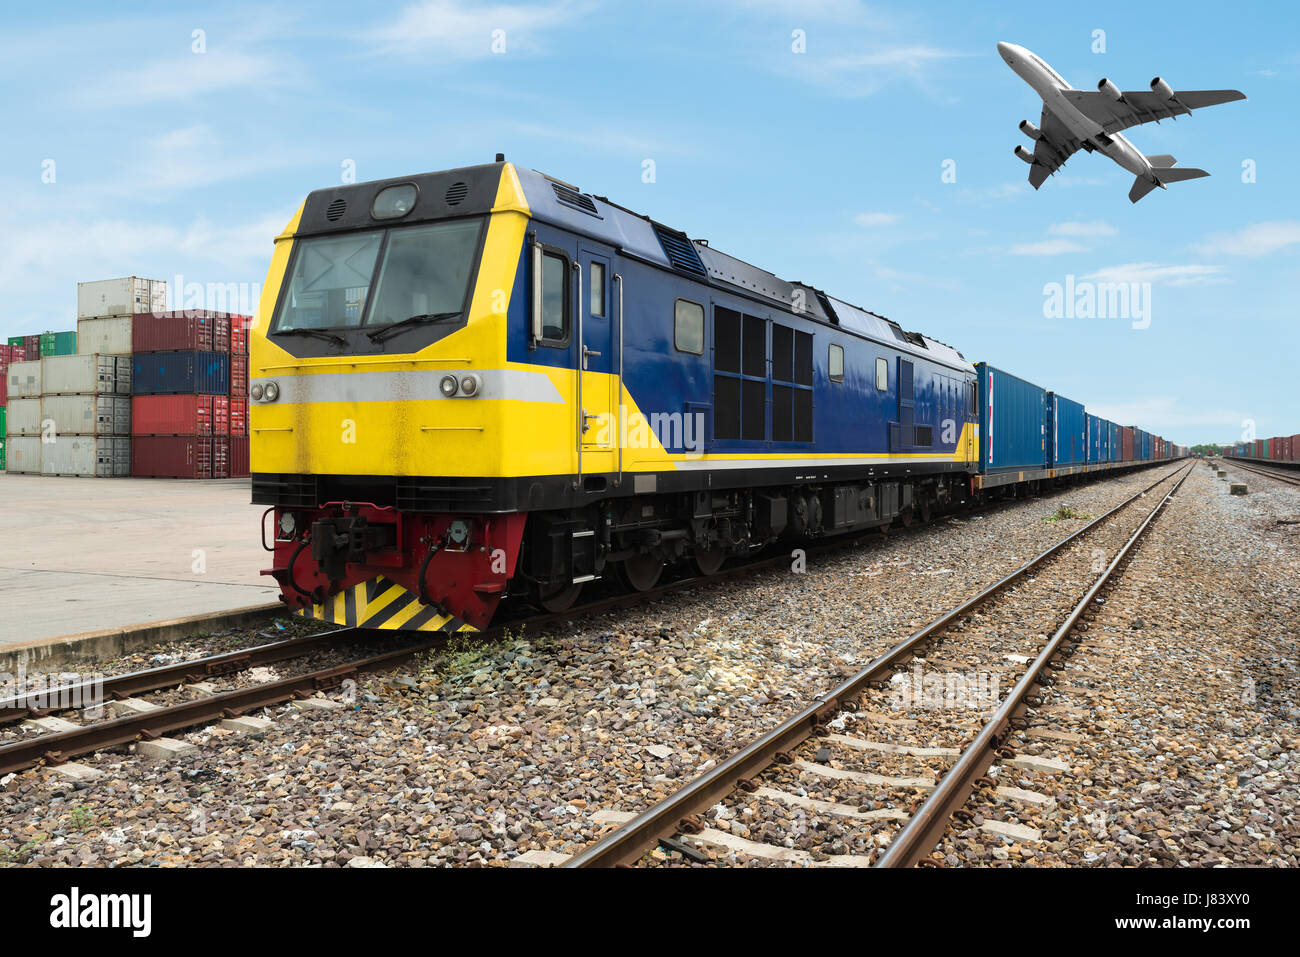 Cargo train platform with freight train container at depot use for Import, Export, Logistics background. Import, - Stock Image